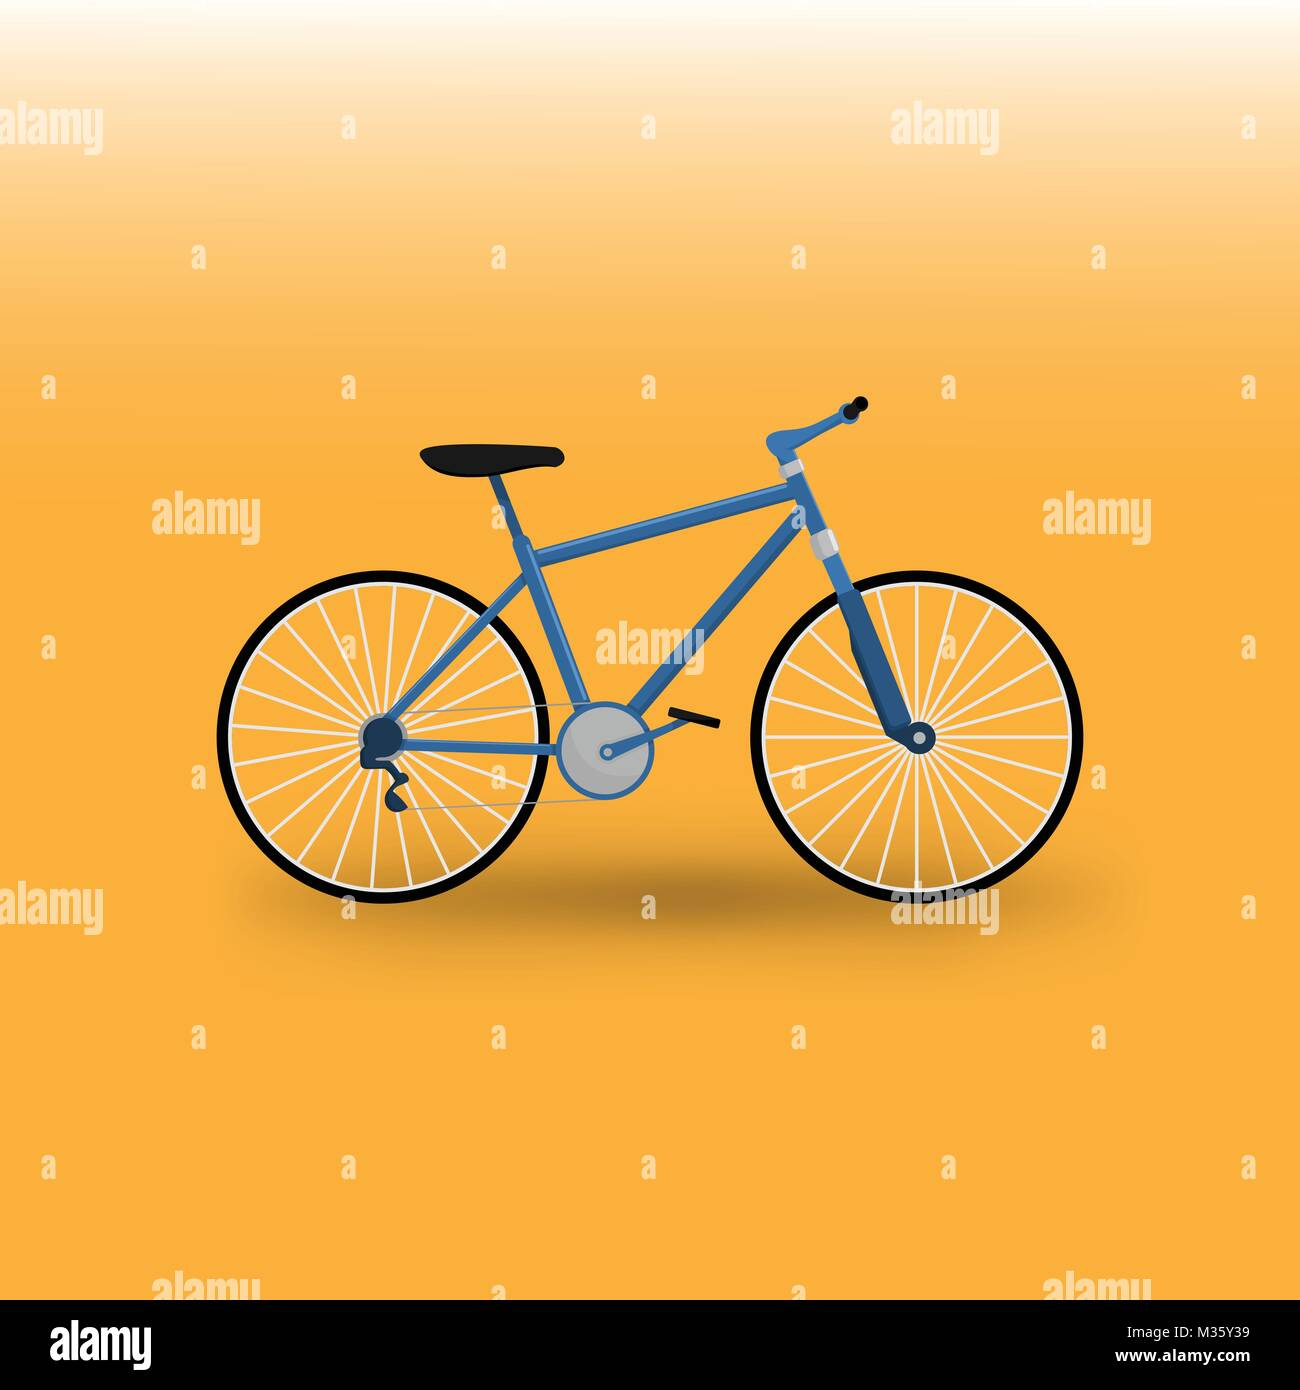 Mountain Bike Bicycle Vector Illustration Graphic Design - Stock Image